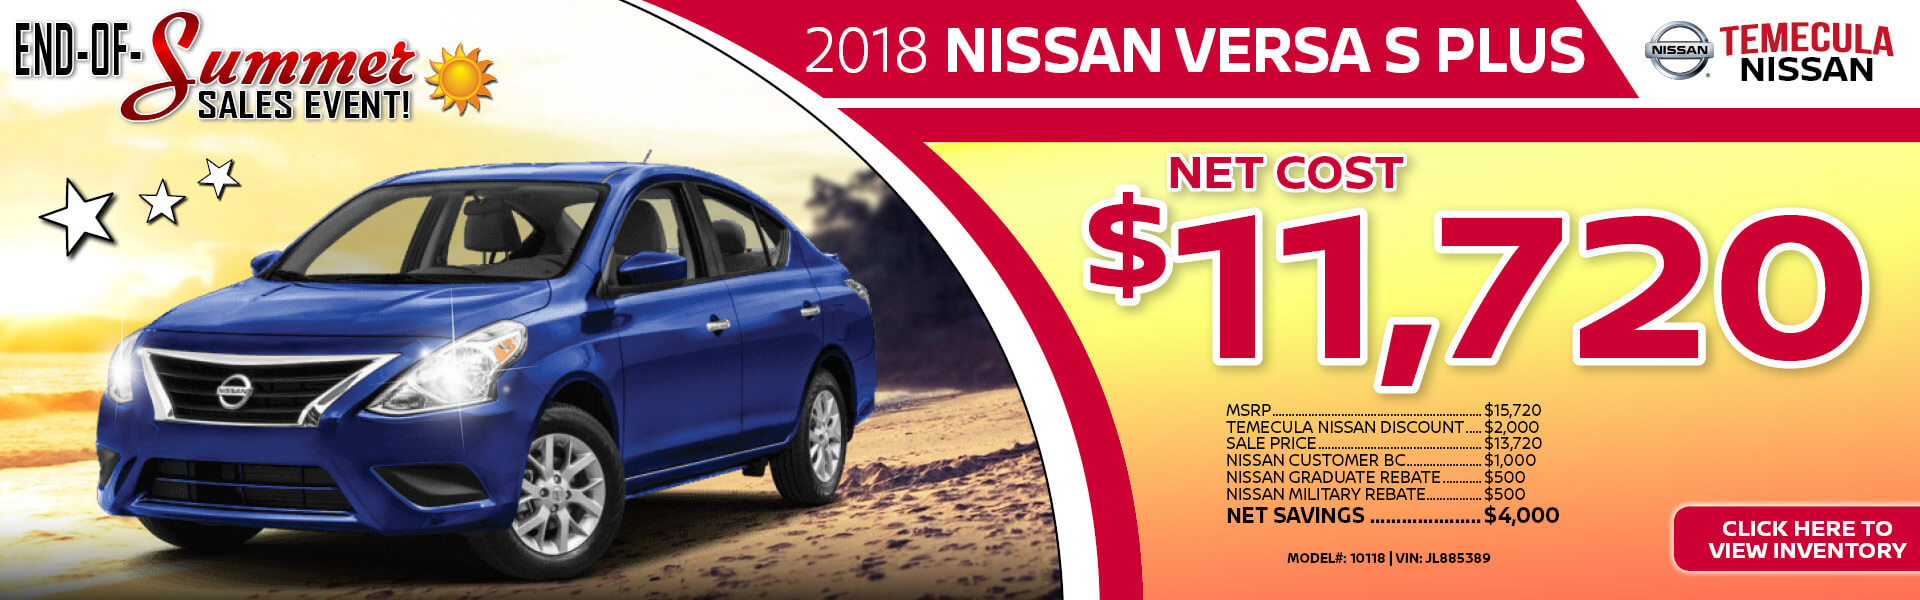 Nissan Versa $11,720 Purchase